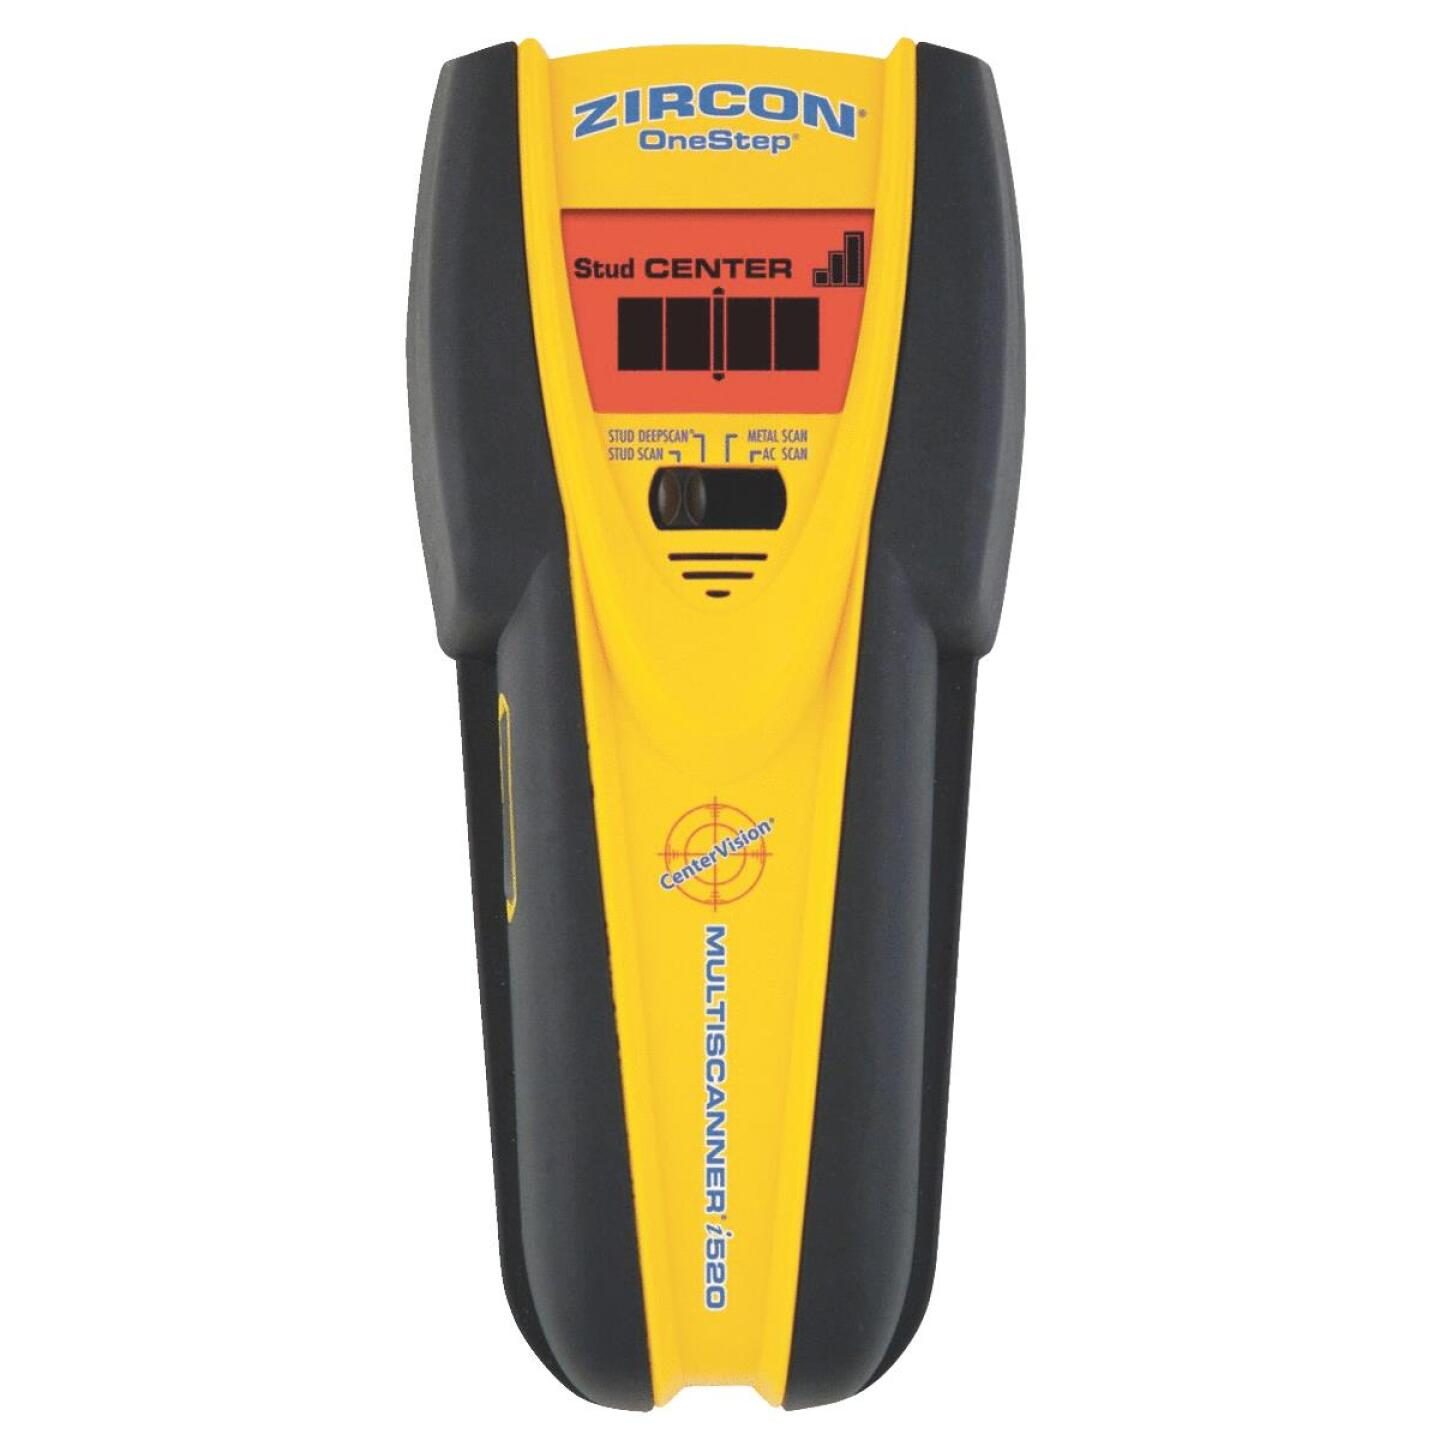 Zircon i520 One Step Electronic Stud Finder Image 2